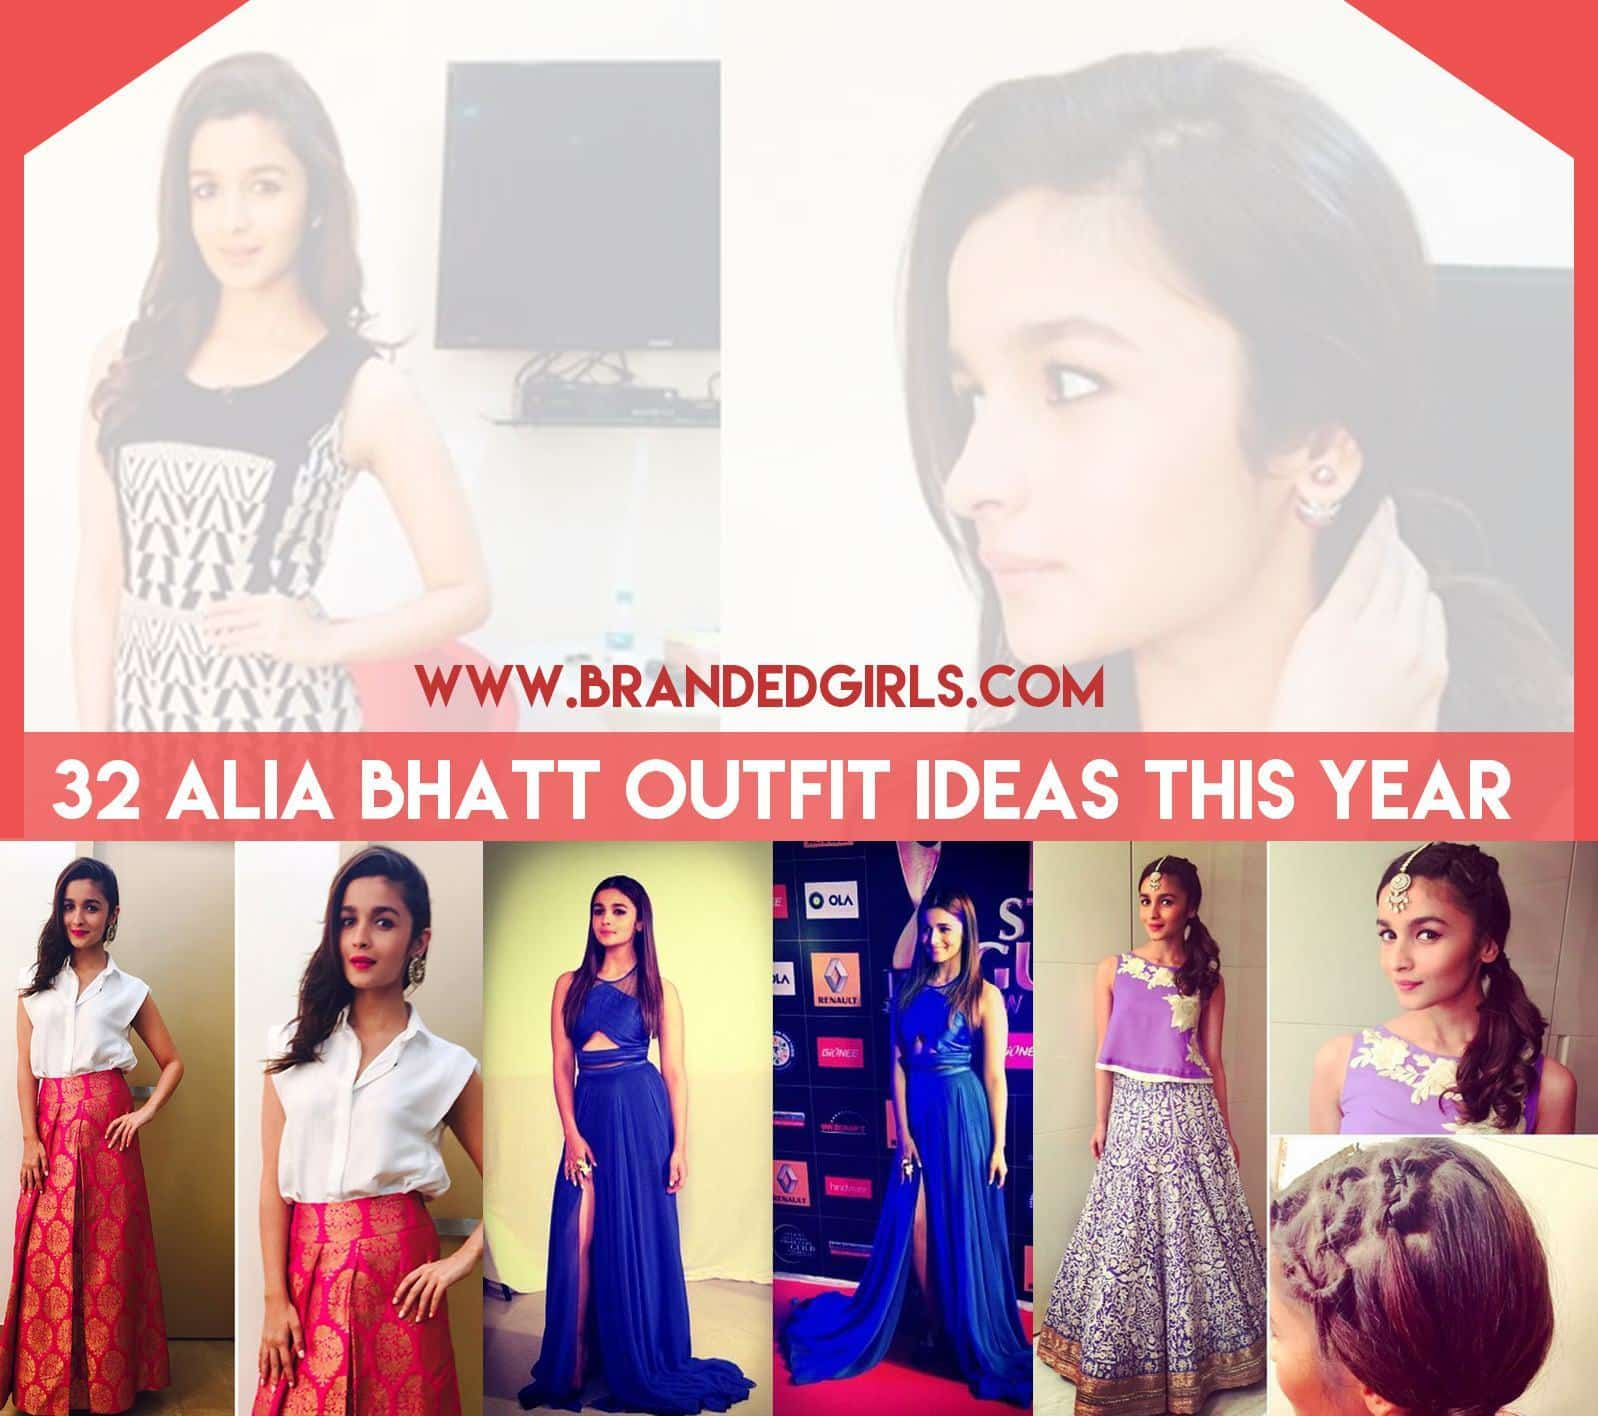 32-alia-bhatt-outfit-ideas-this-year Alia Bhatt Outfits-32 Best Dressing Styles of Alia Bhatt